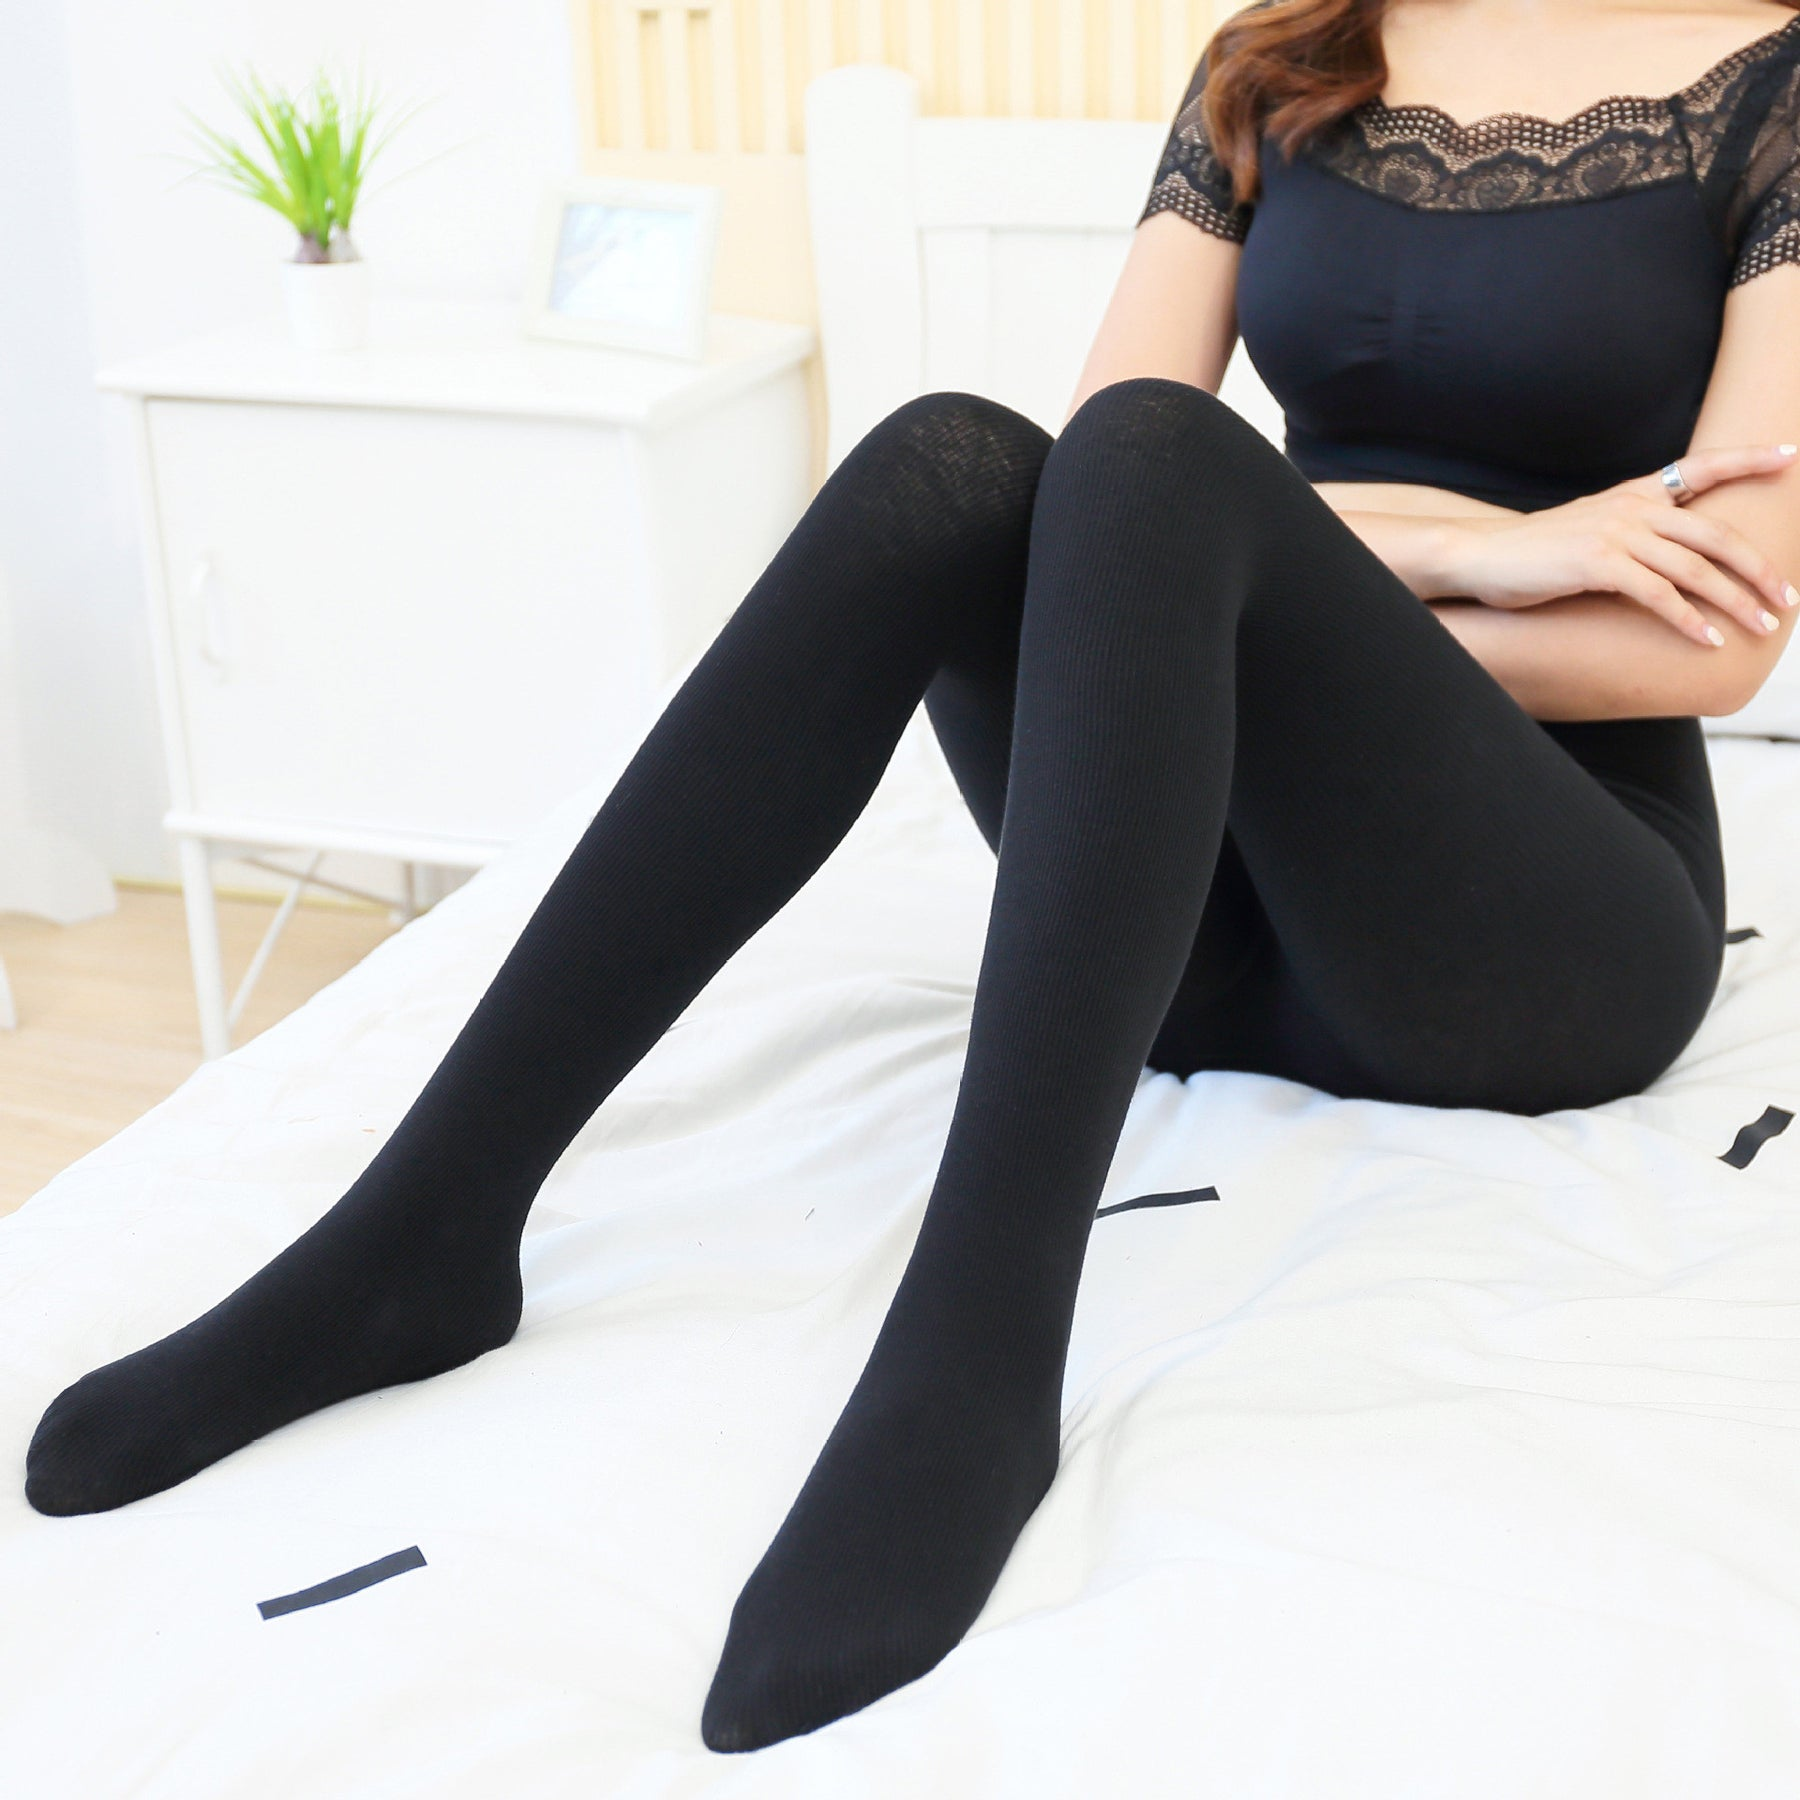 Image result for Pantyhose